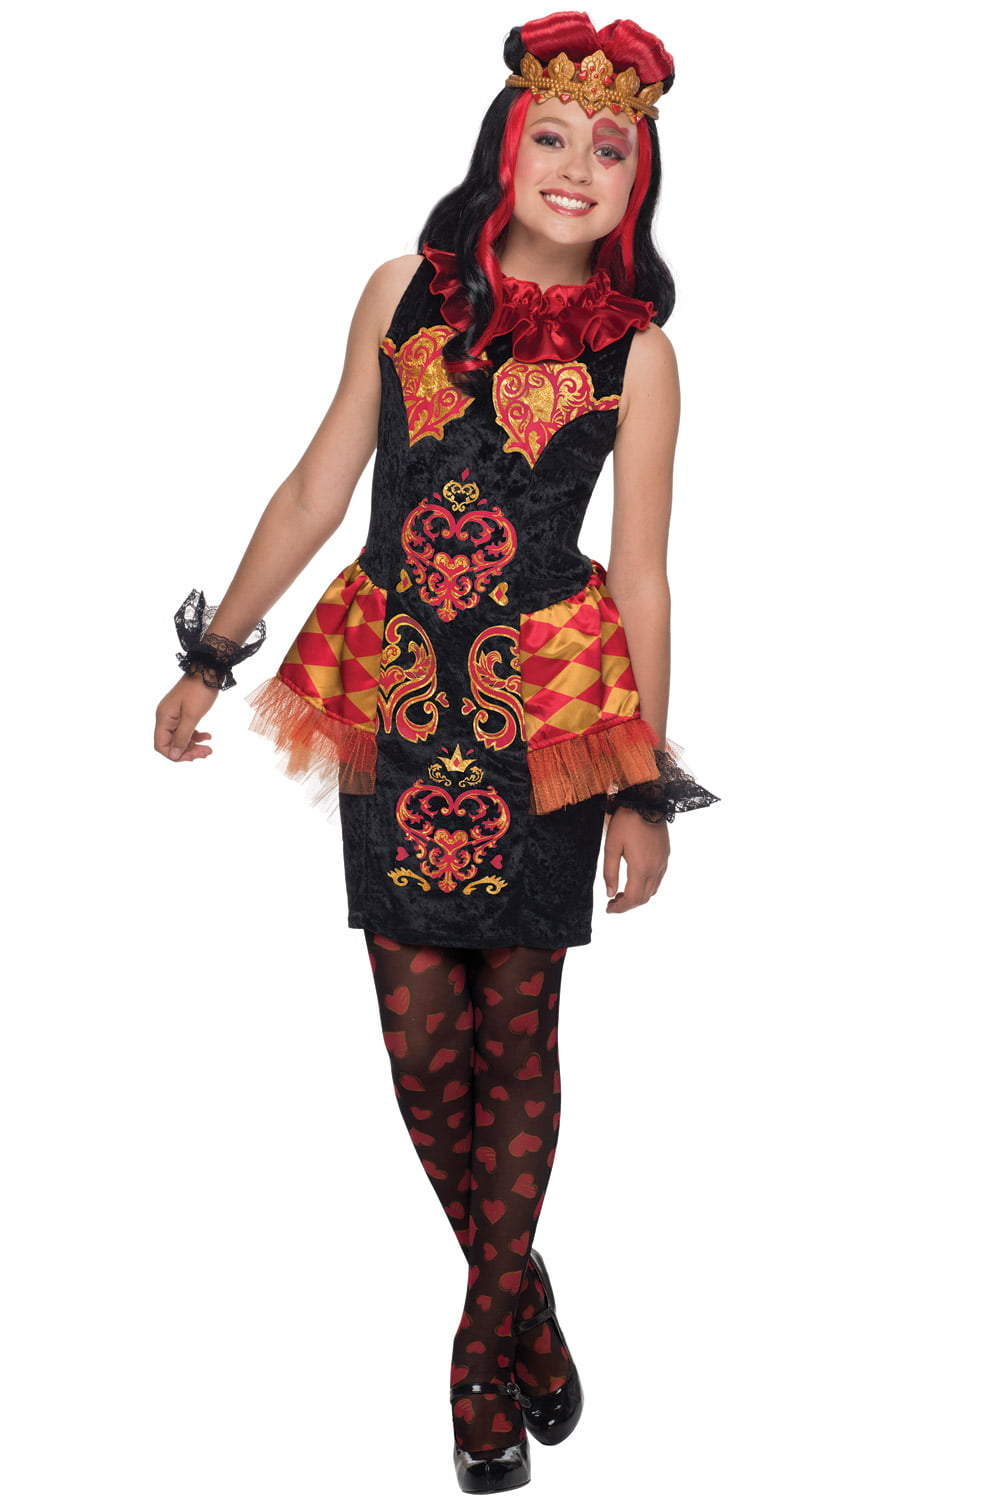 lizzie hearts child costume walmartcom